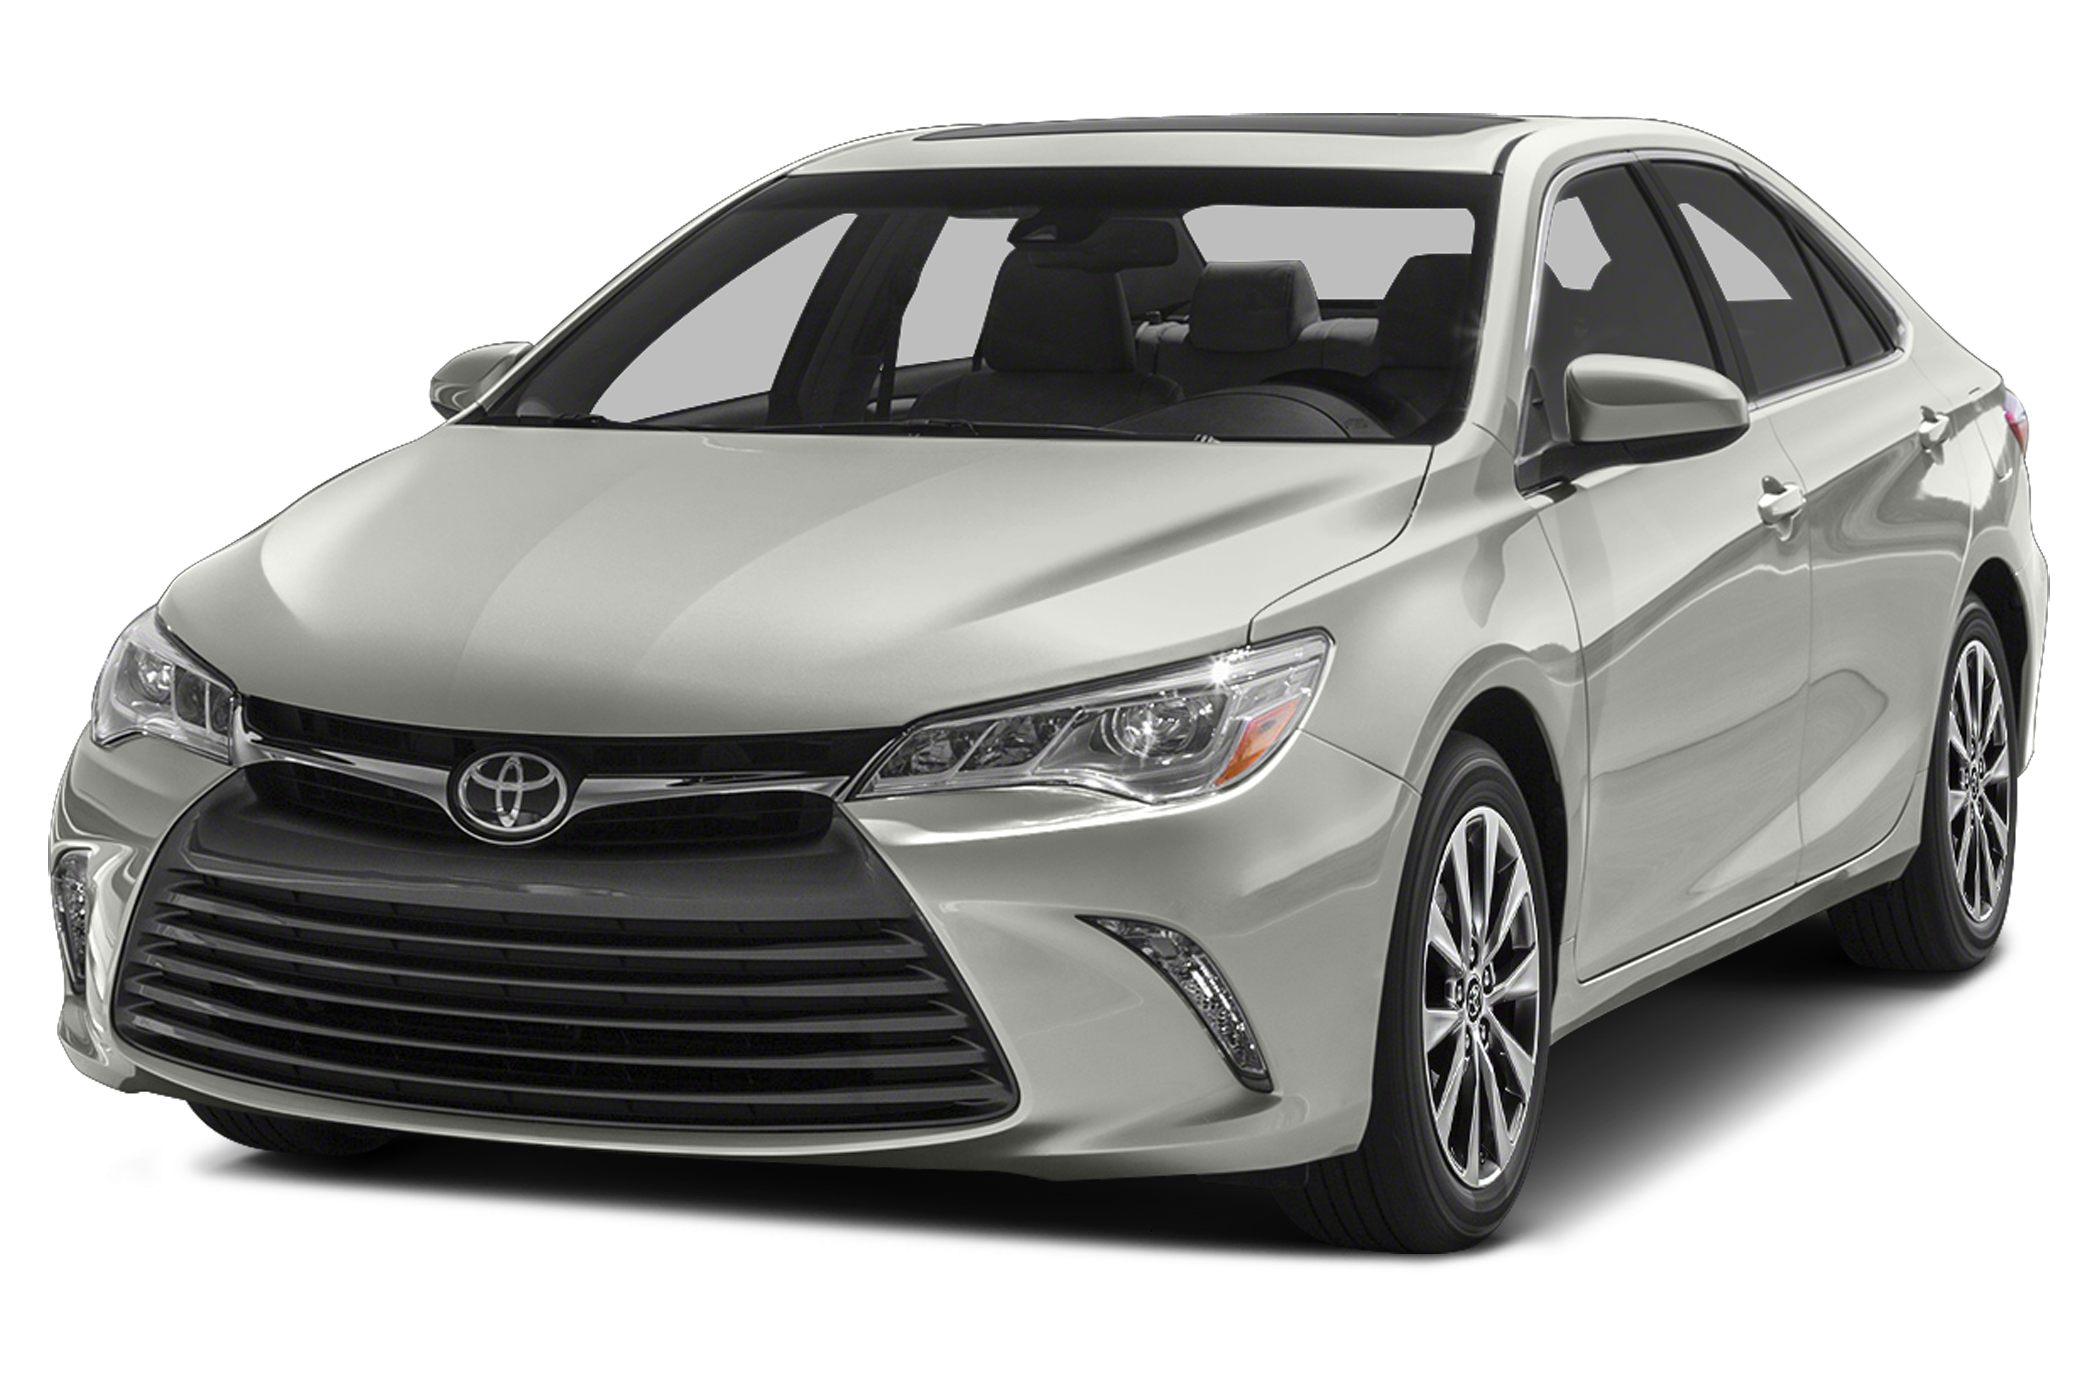 2015 Toyota Camry XLE Sedan for sale in Chicago for $30,195 with 2 miles